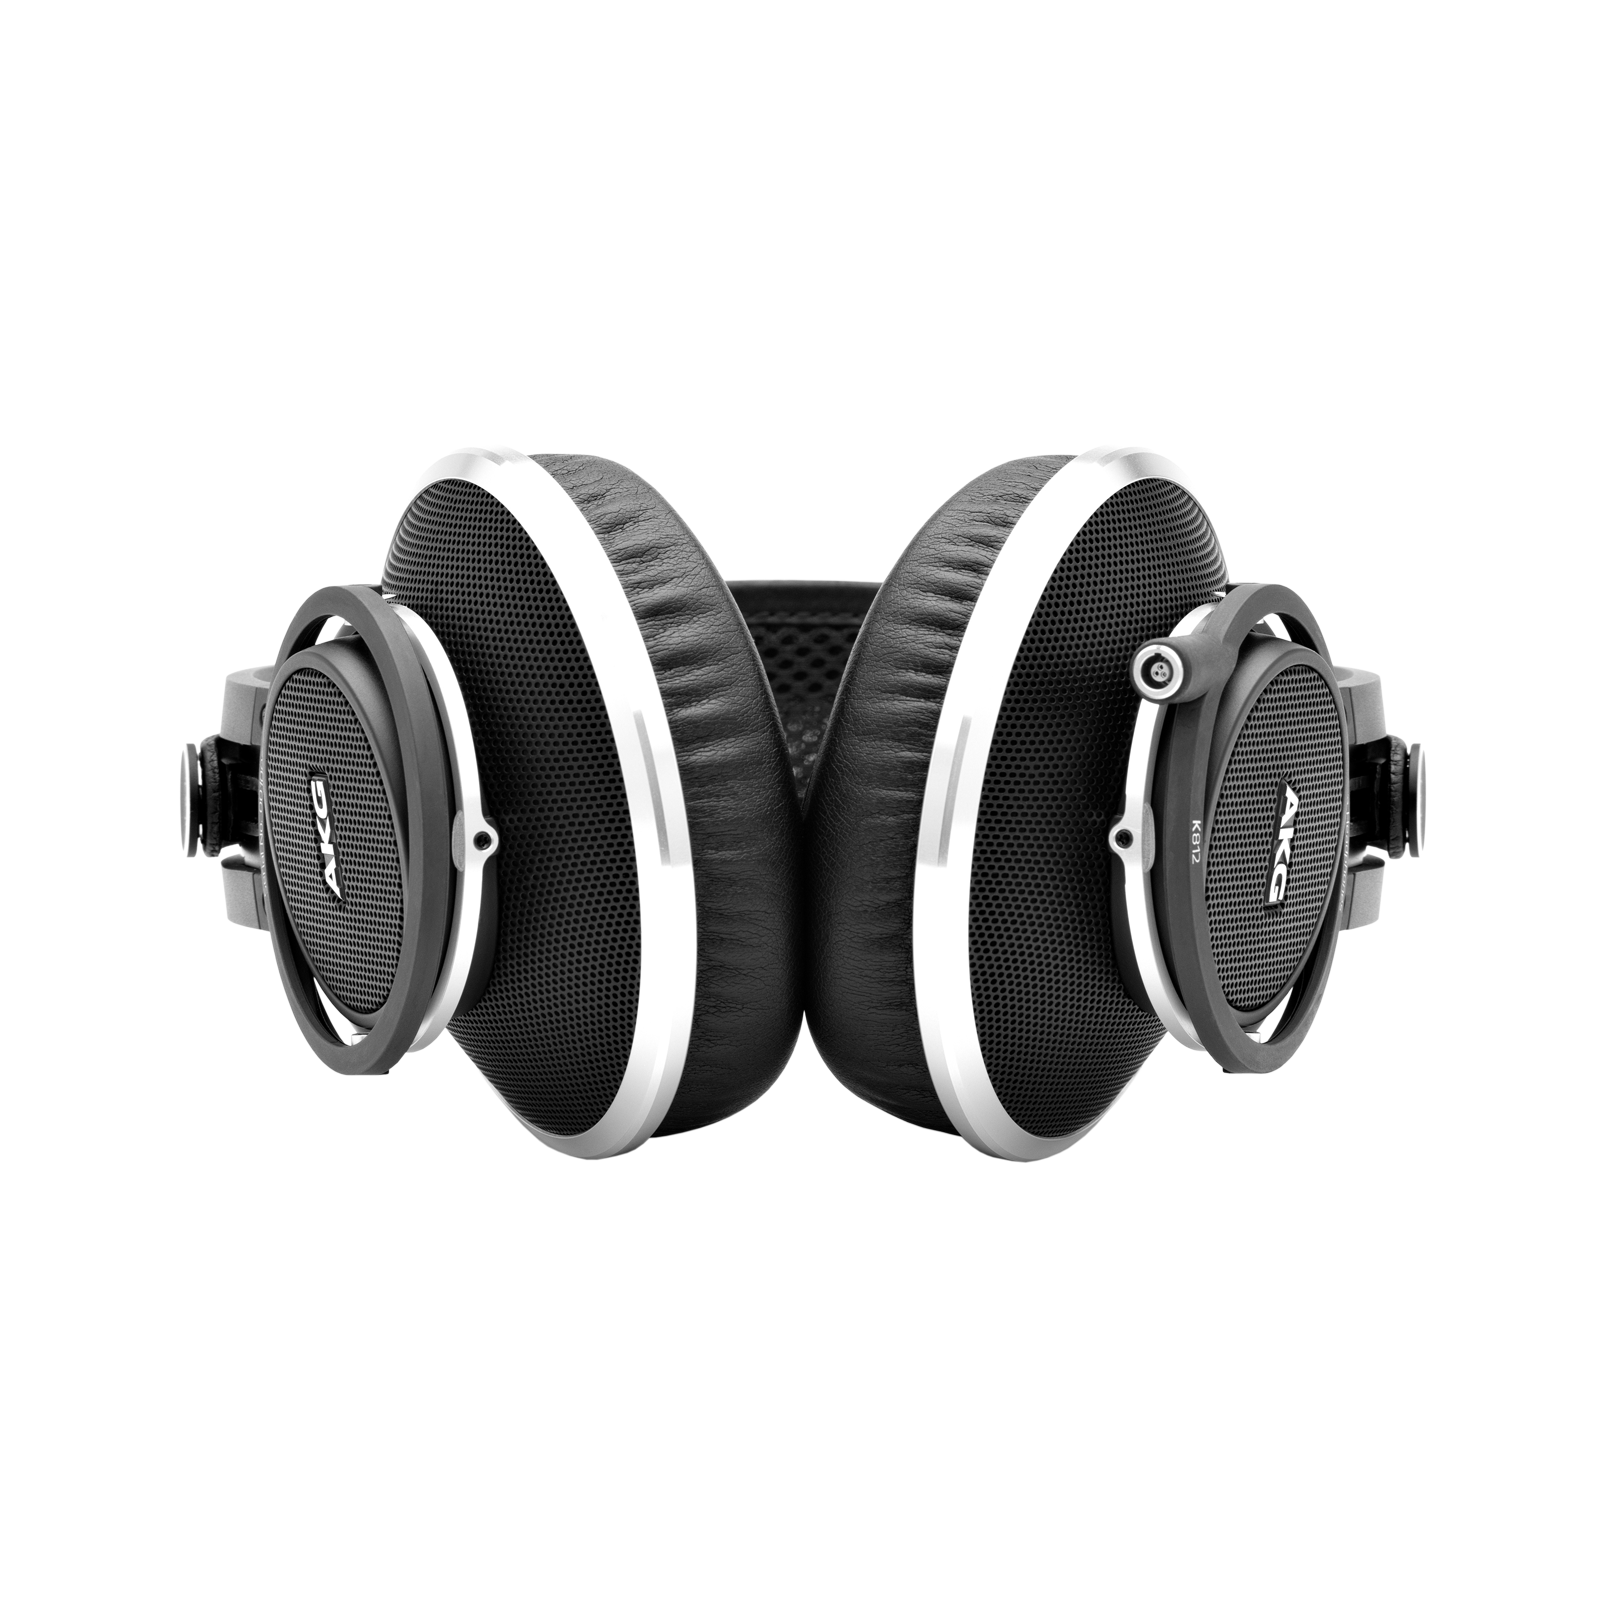 K812 - Black - Superior reference headphones - Detailshot 1